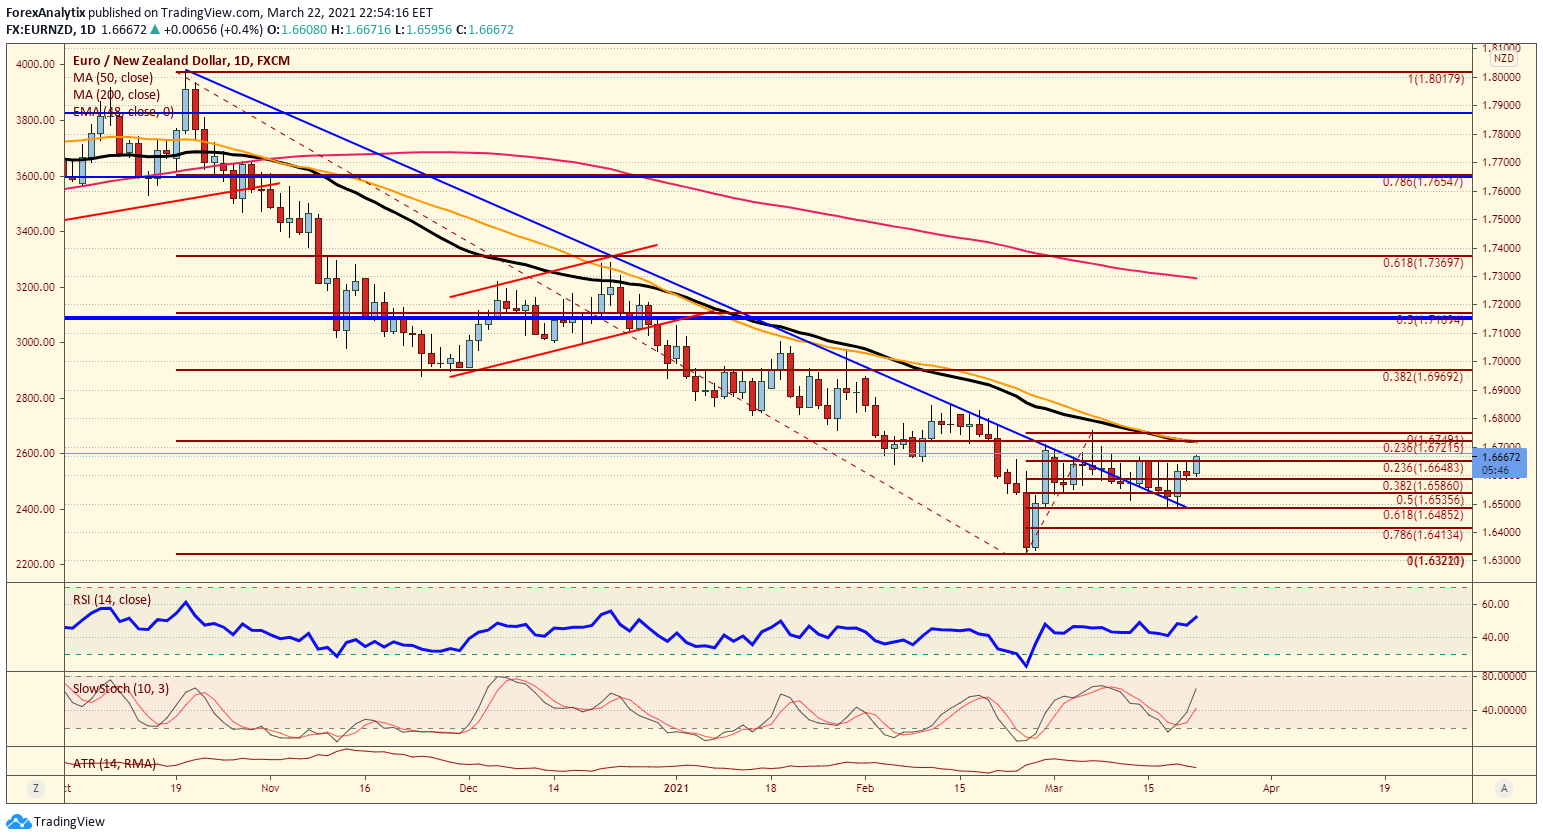 EUR/NZD Daily Chart.